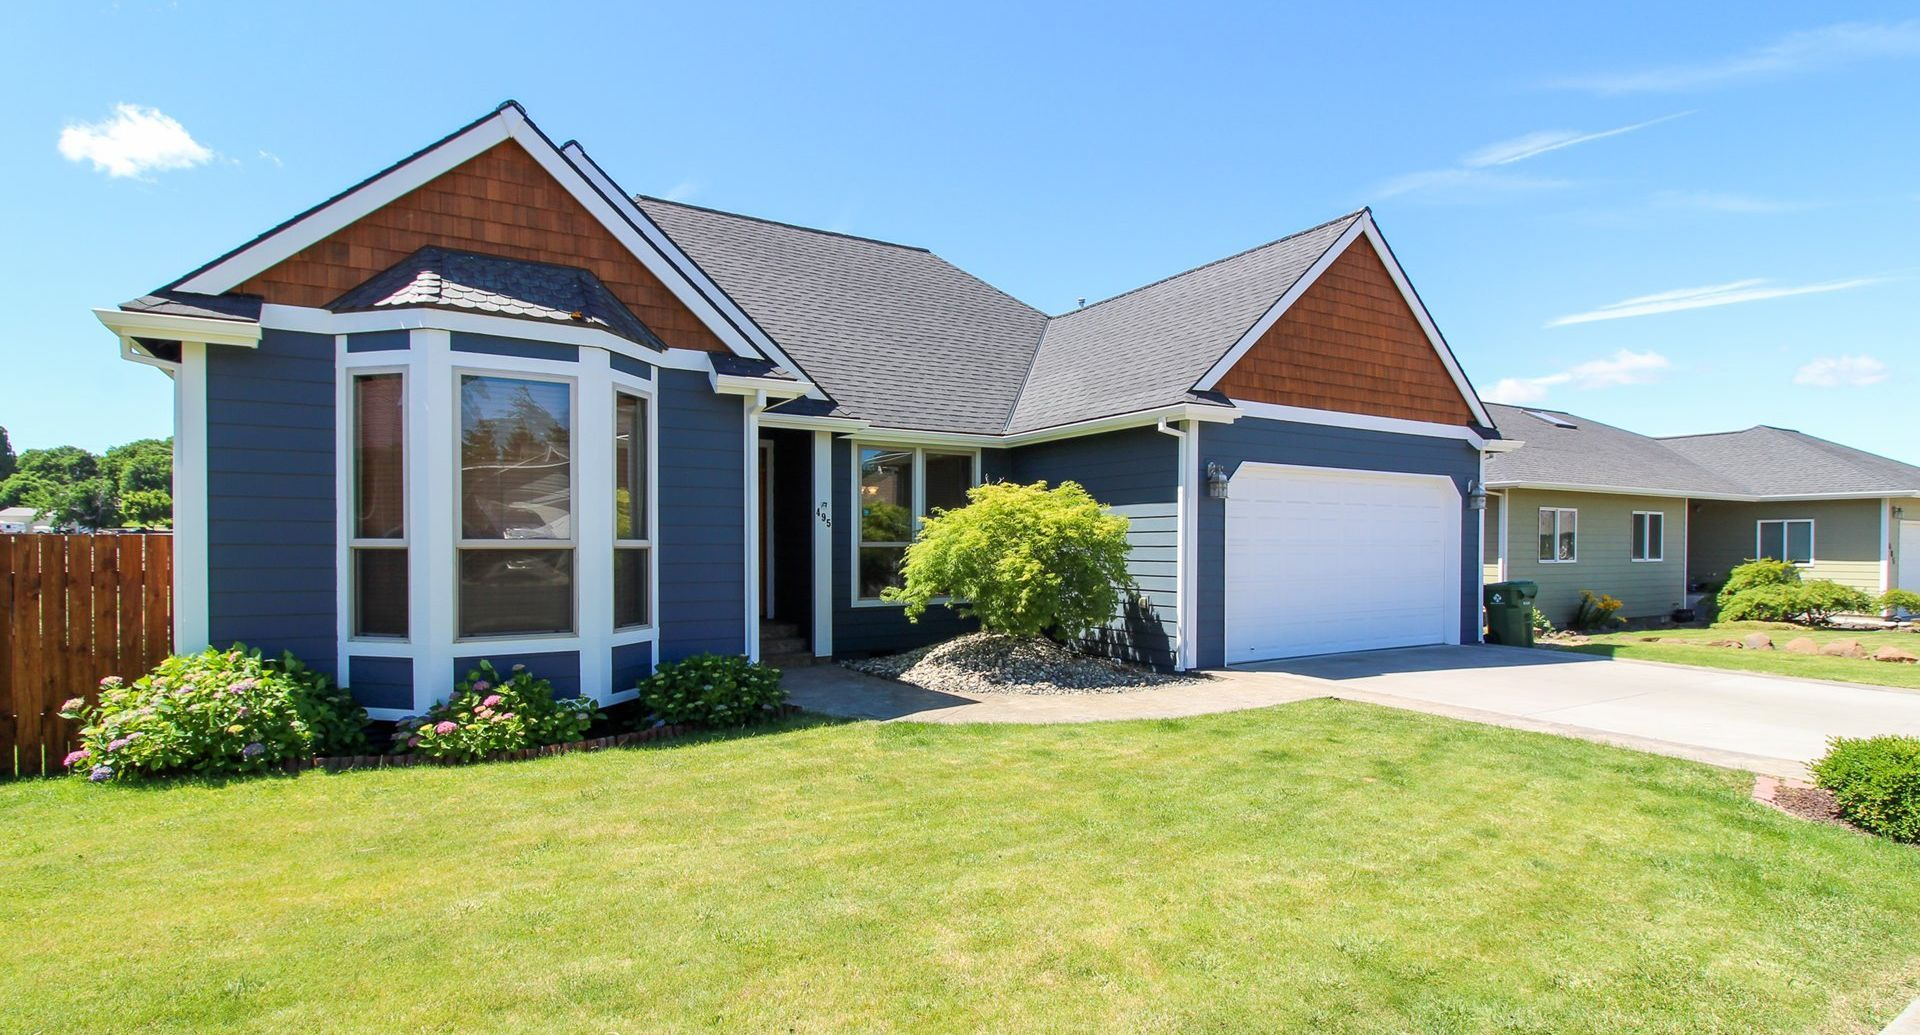 495 East Knoll Drive The Dalles Price Drop